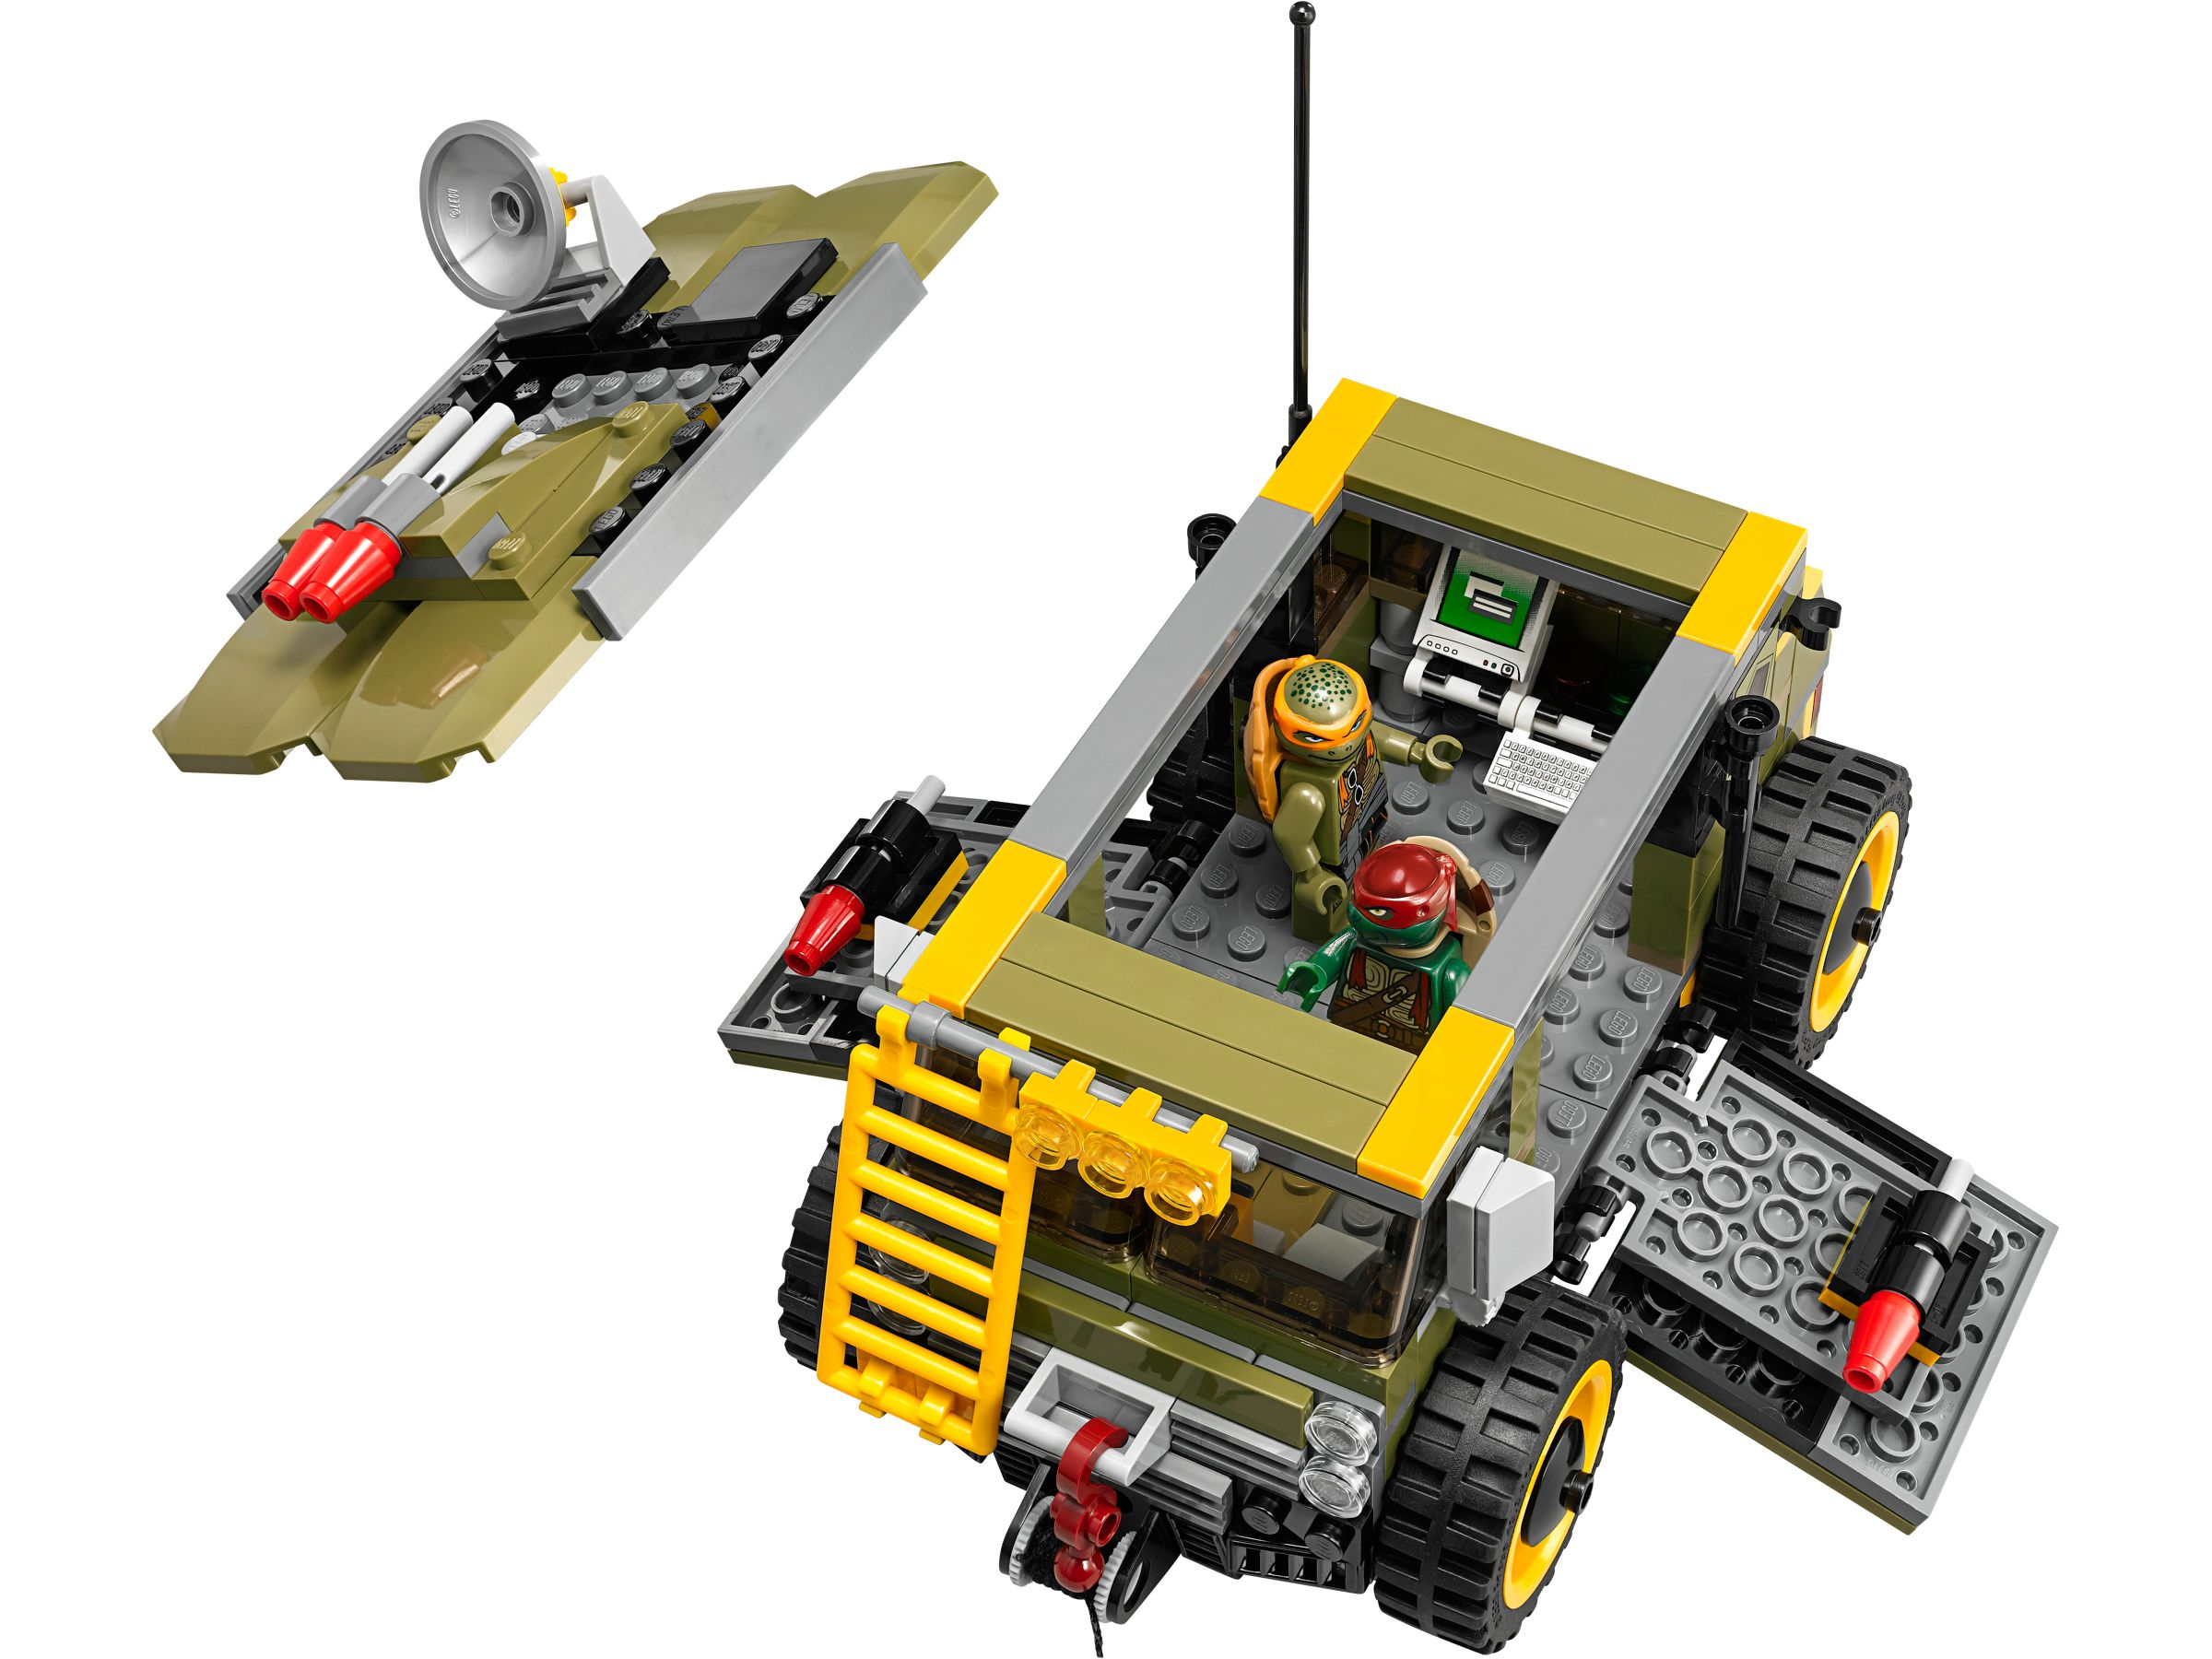 LEGO Teenage Mutant Ninja Turtles 79115 Turtle Van LEGO_79115_alt3.jpg